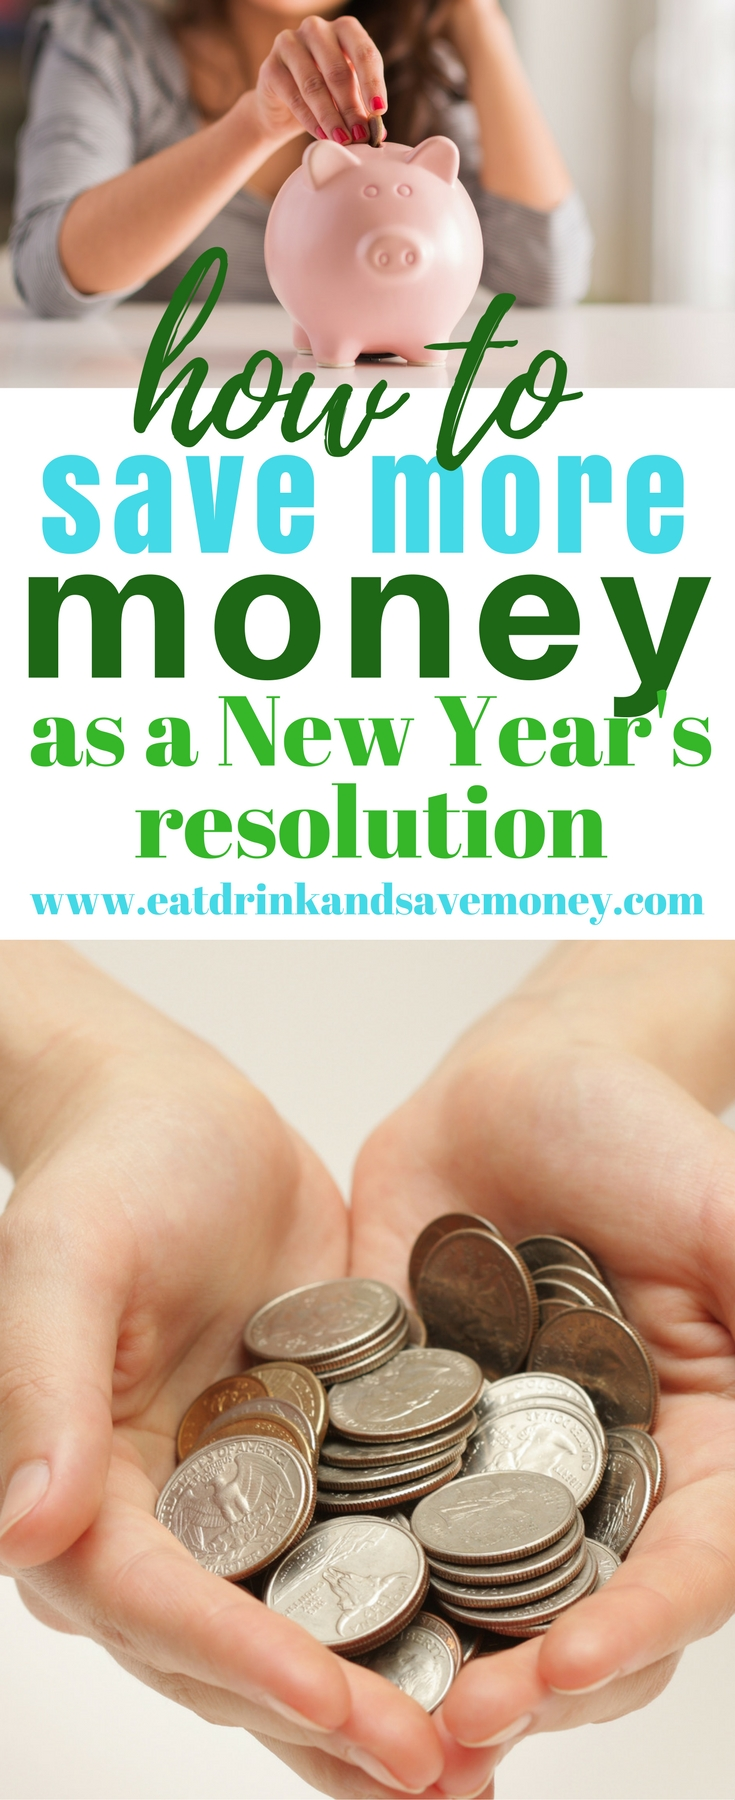 How to save more money in the New Year. New Year's resolution to save money. #savemoney #newyearsresolution #getoutofdebt